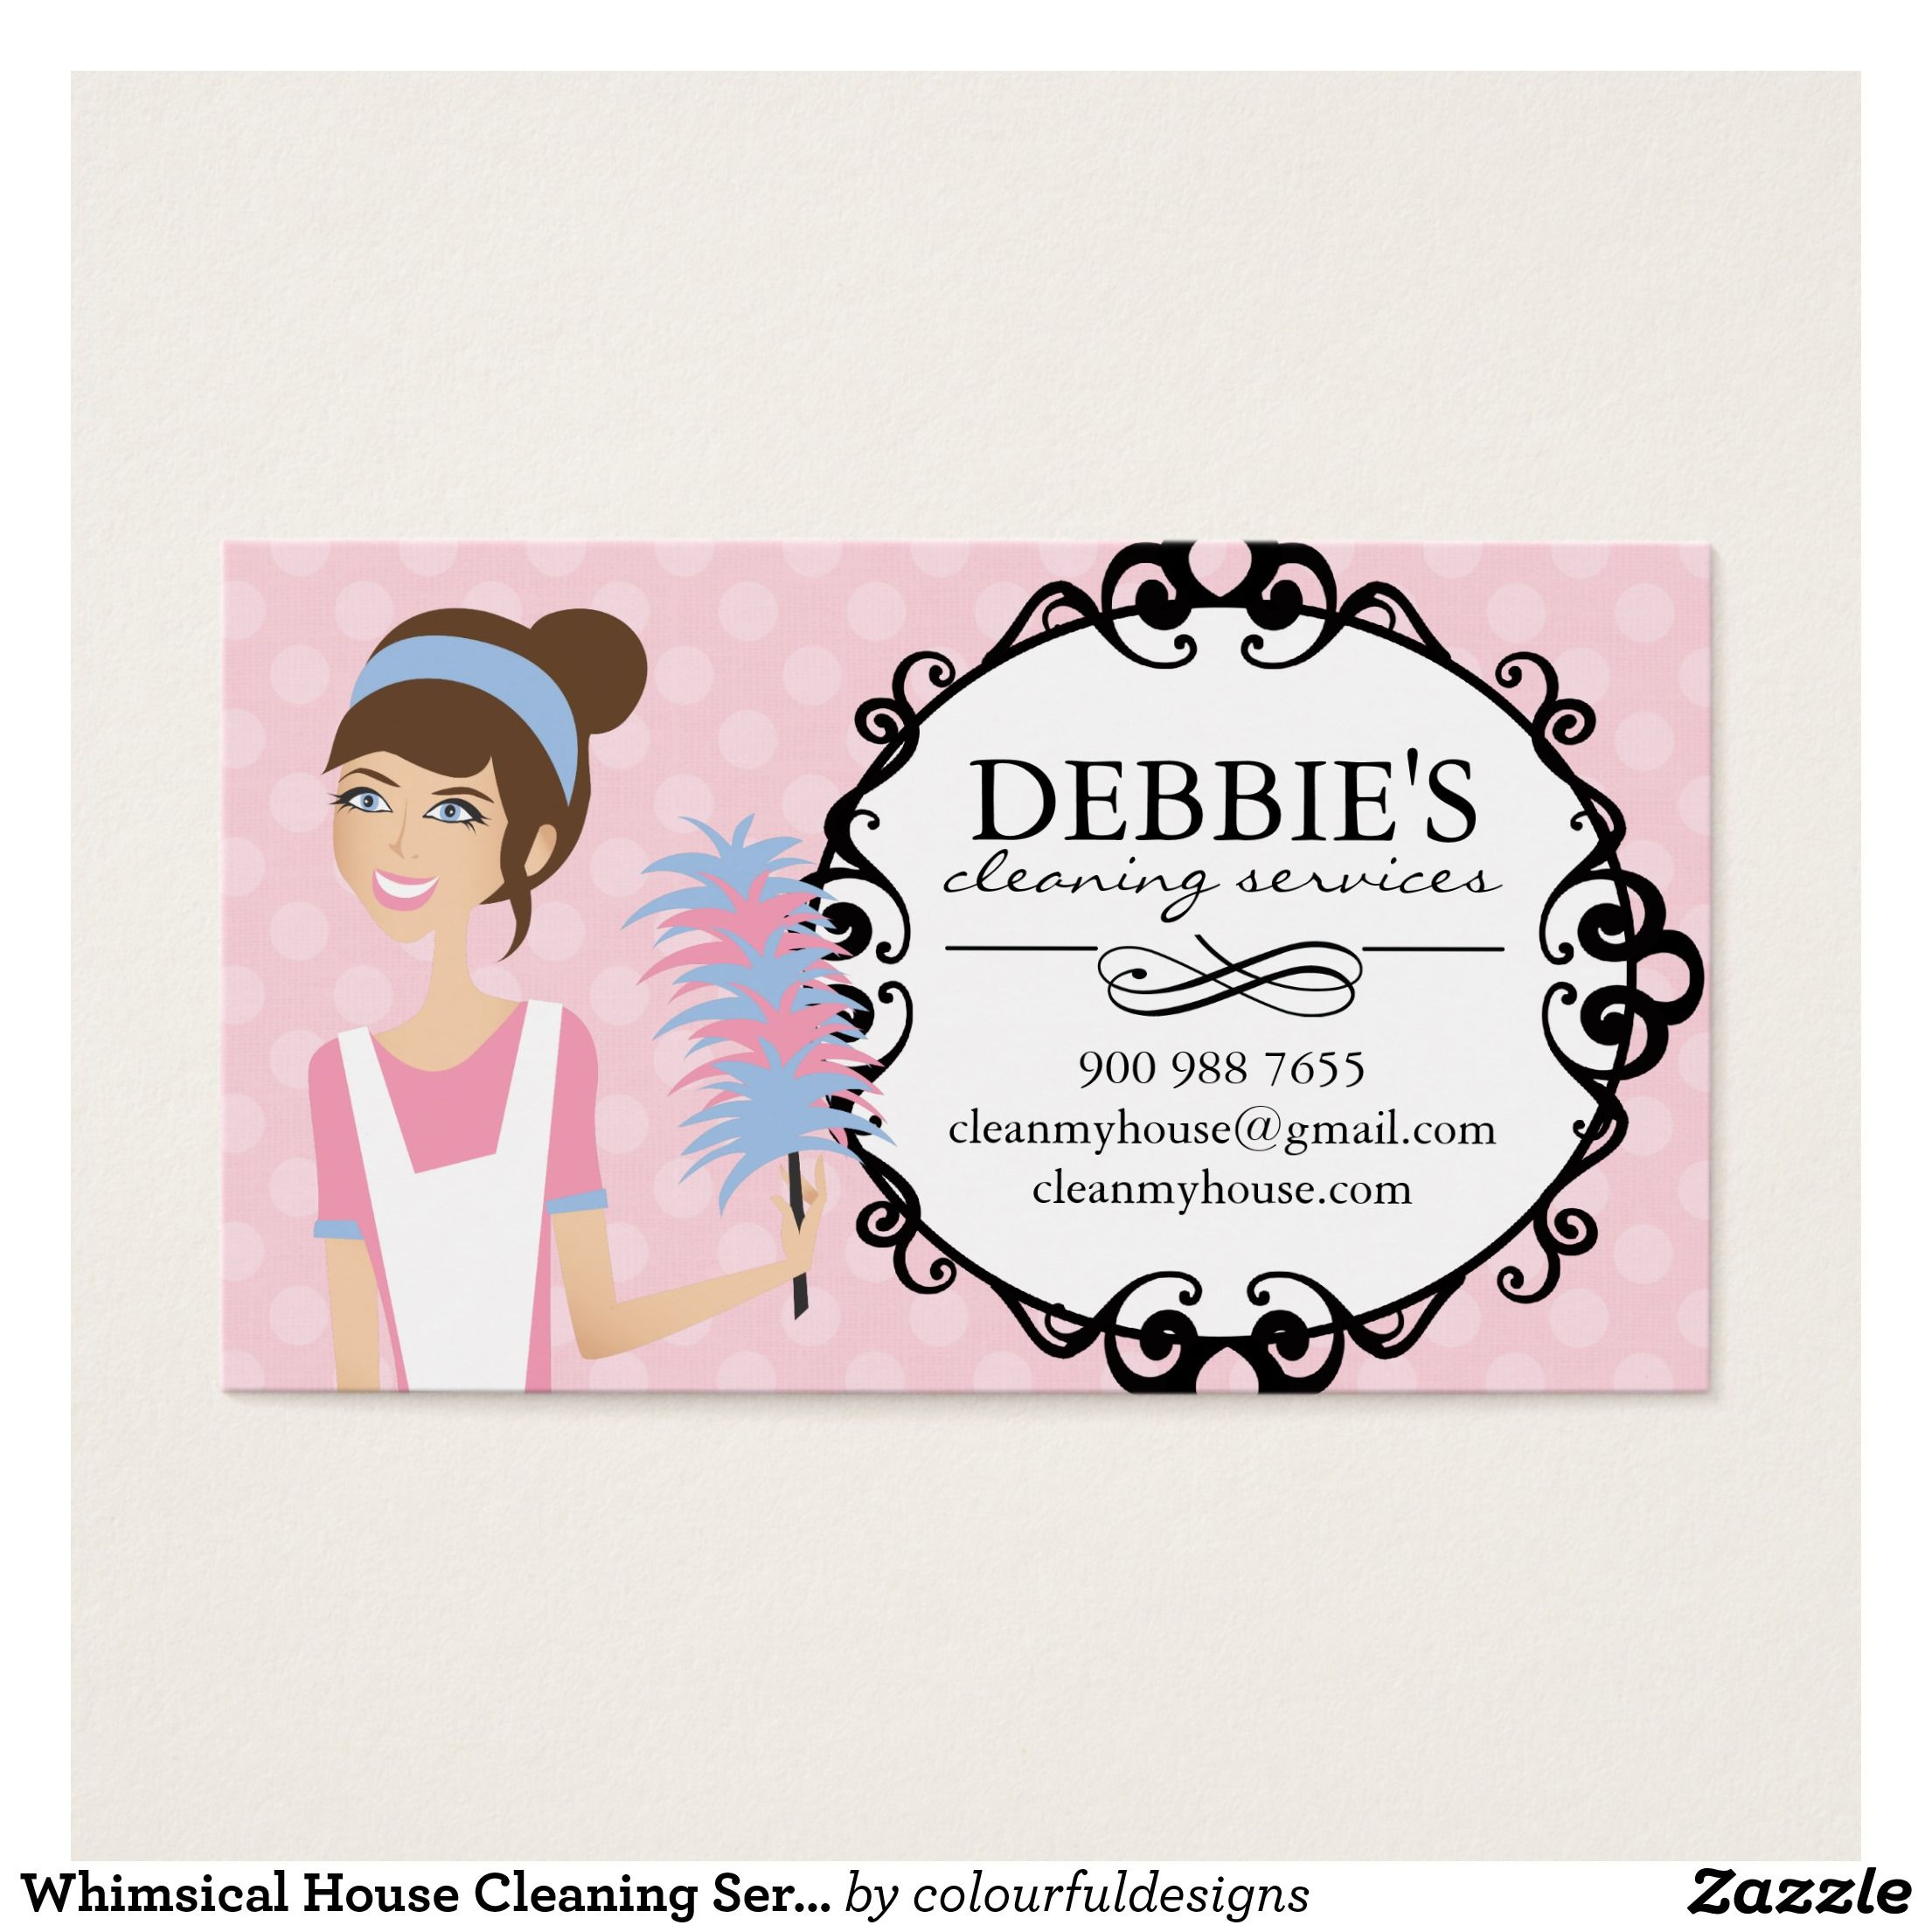 Whimsical House Cleaning Services Business Cards  Ffffdd